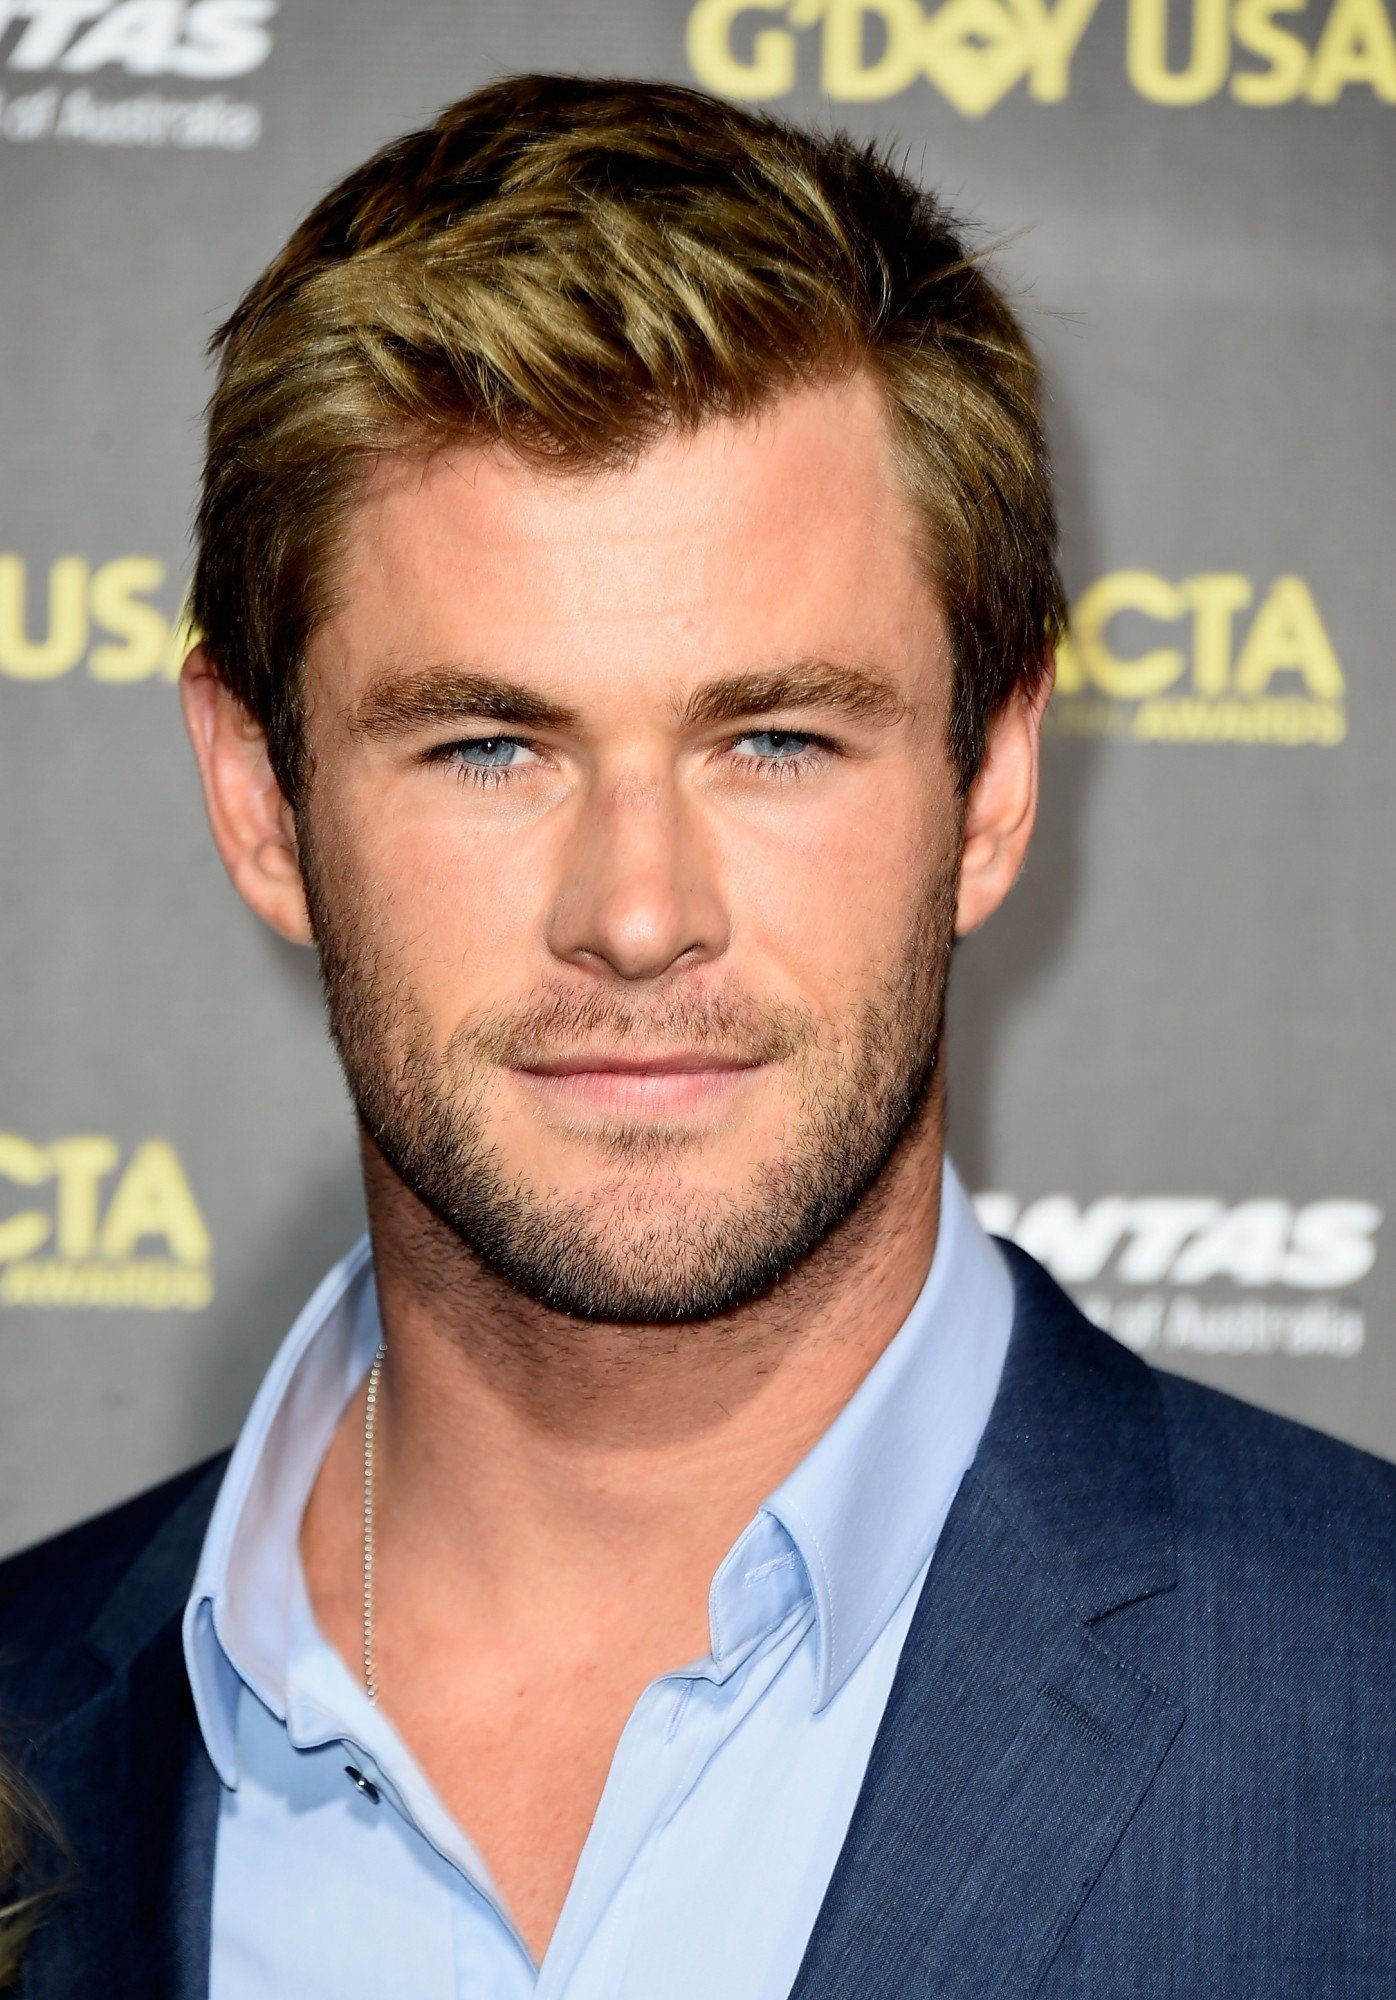 LOS ANGELES, CA - JANUARY 31:  Actor Chris Hemsworth arrives at the 2015 G'Day USA Gala Featuring The AACTA International Awards Presented By QANTAS at the Hollywood Palladium on January 31, 2015 in Los Angeles, California.  (Photo by Frazer Harrison/Getty Images)